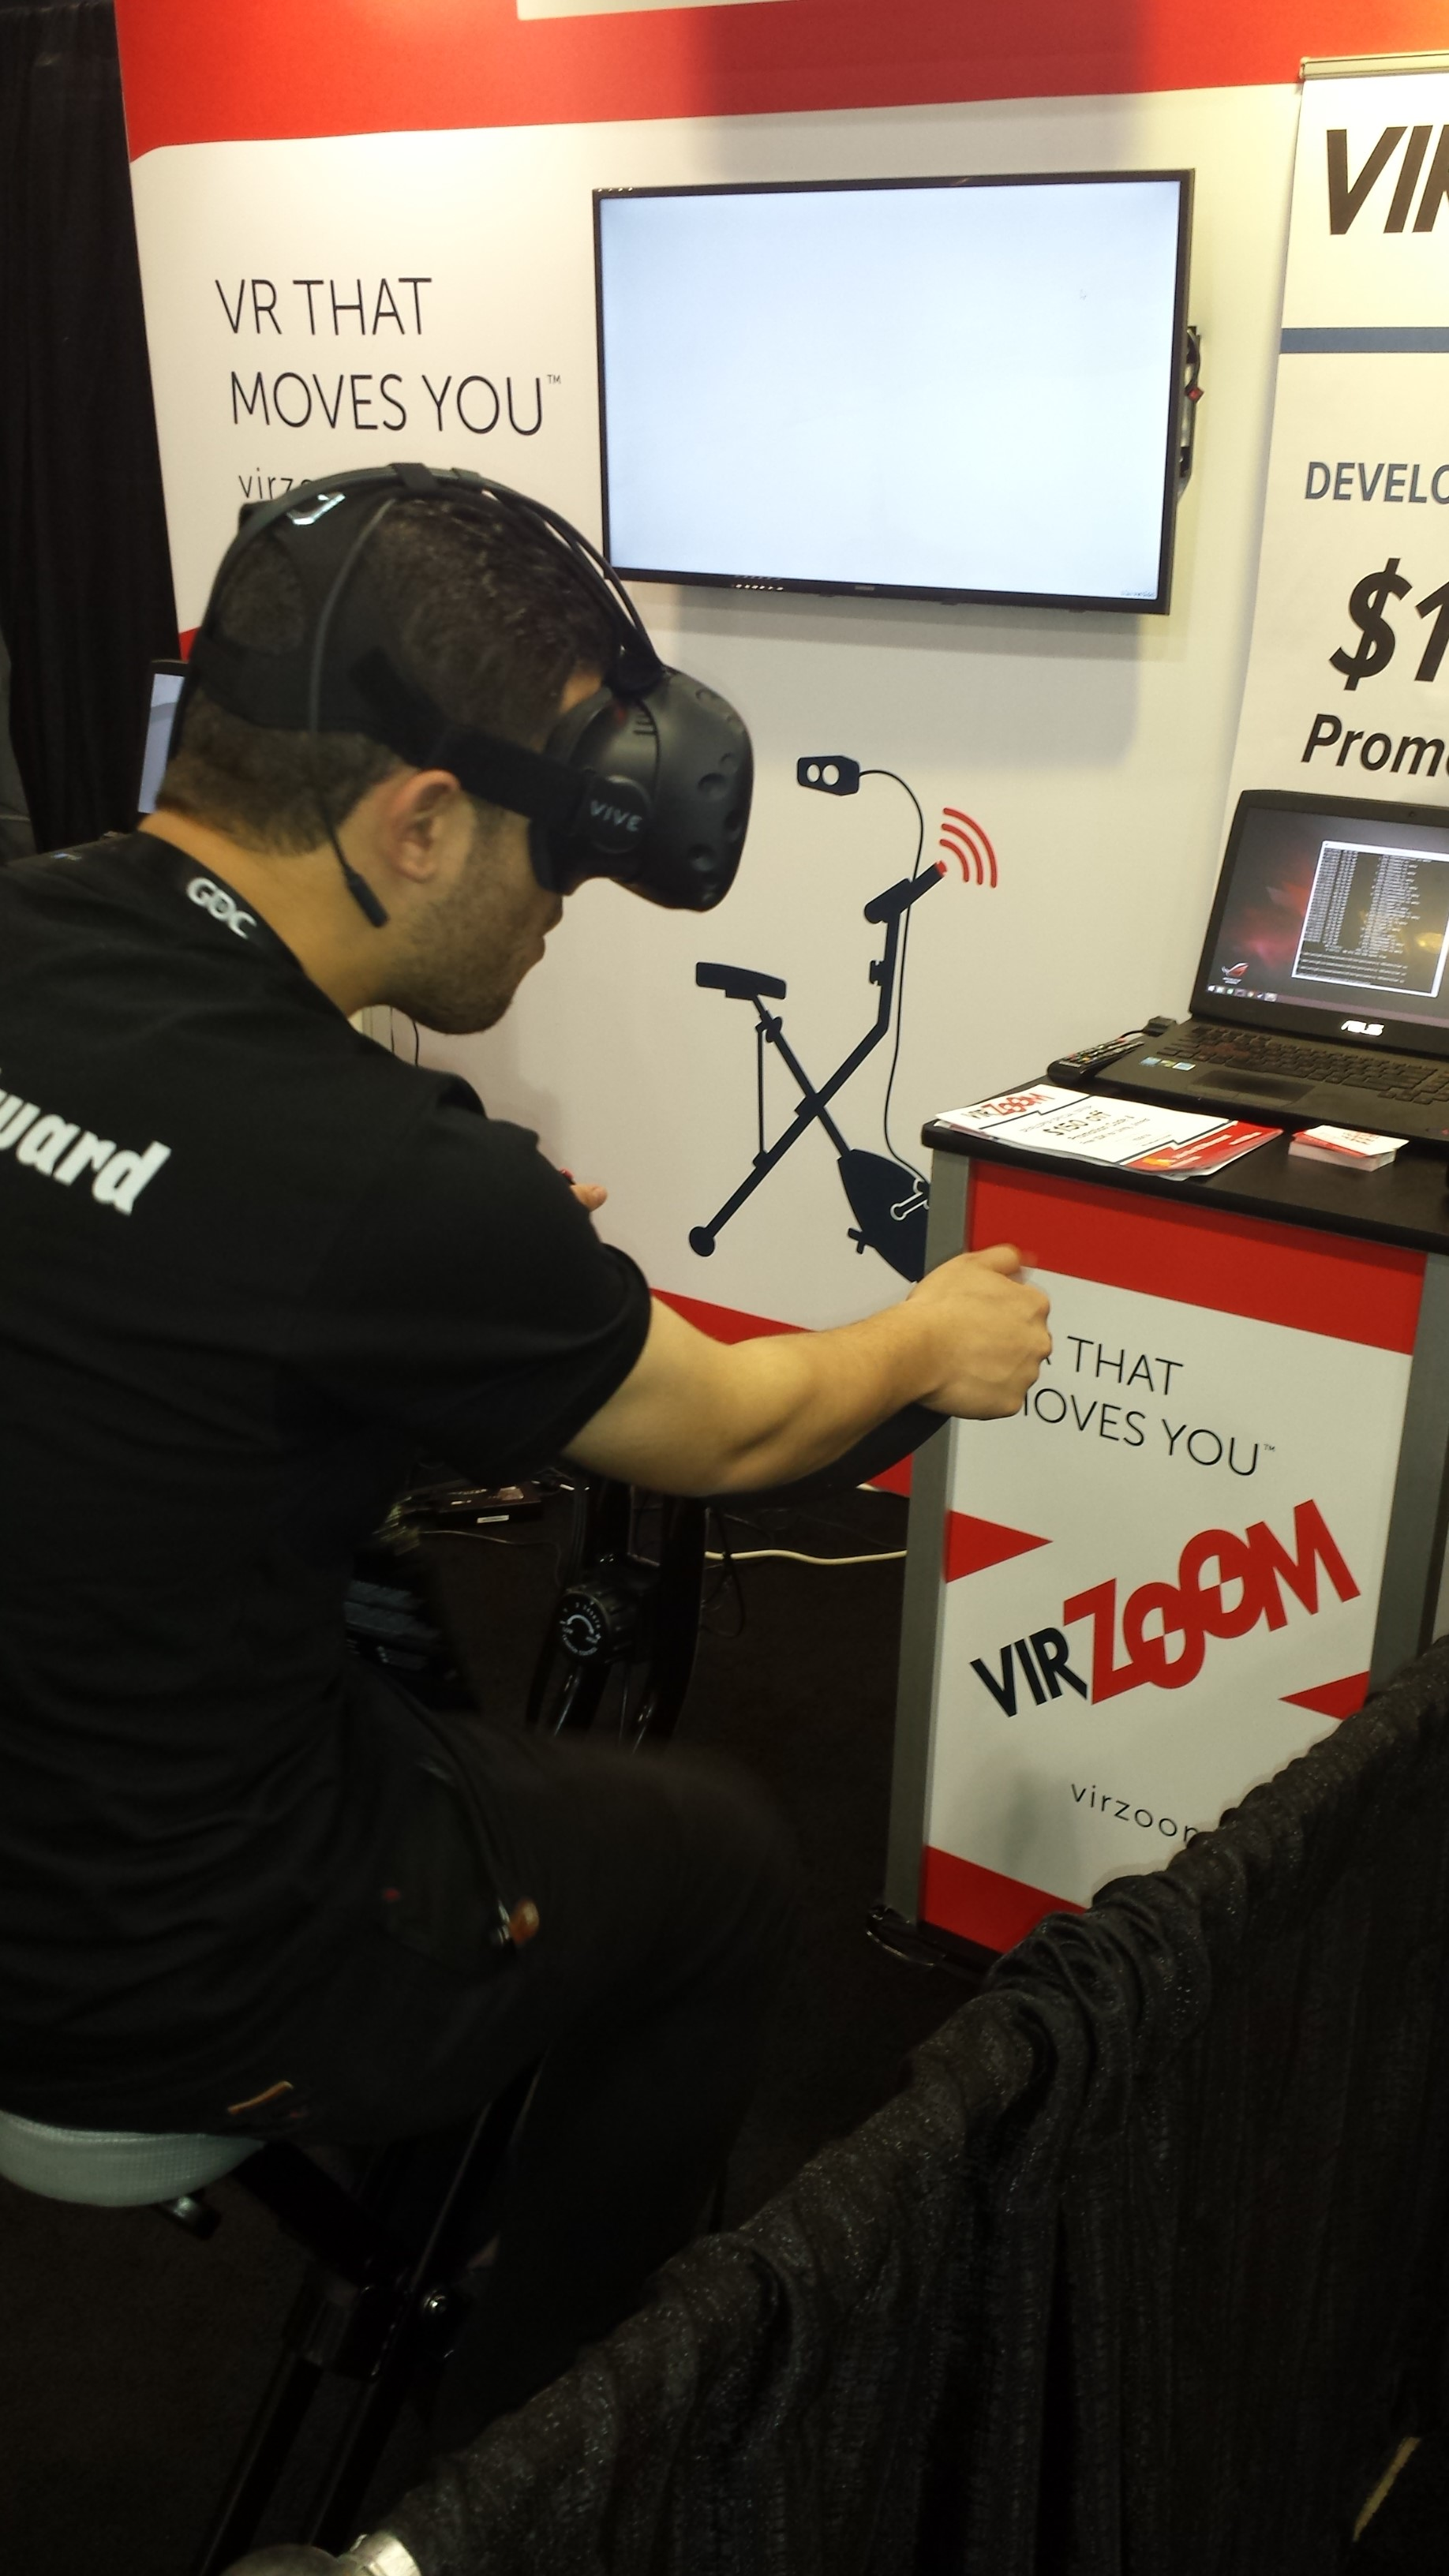 VirZoom. An exercise bike game controller. One of the surprisingly awesome VR experiences I had at GDC.